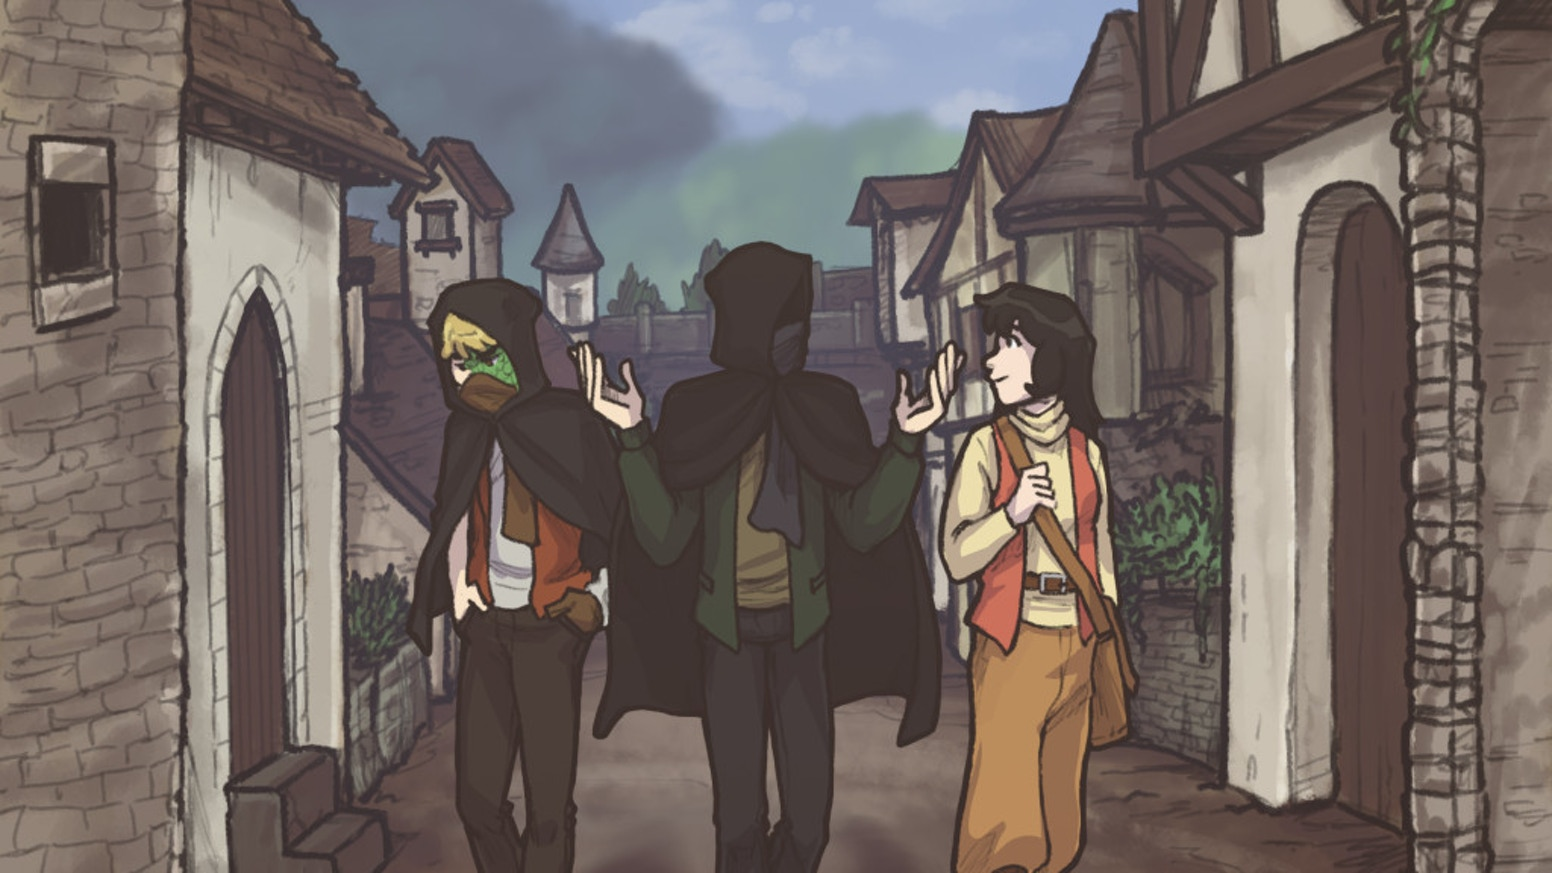 A medieval fantasy adventure graphic novel about magic and stealing stuff